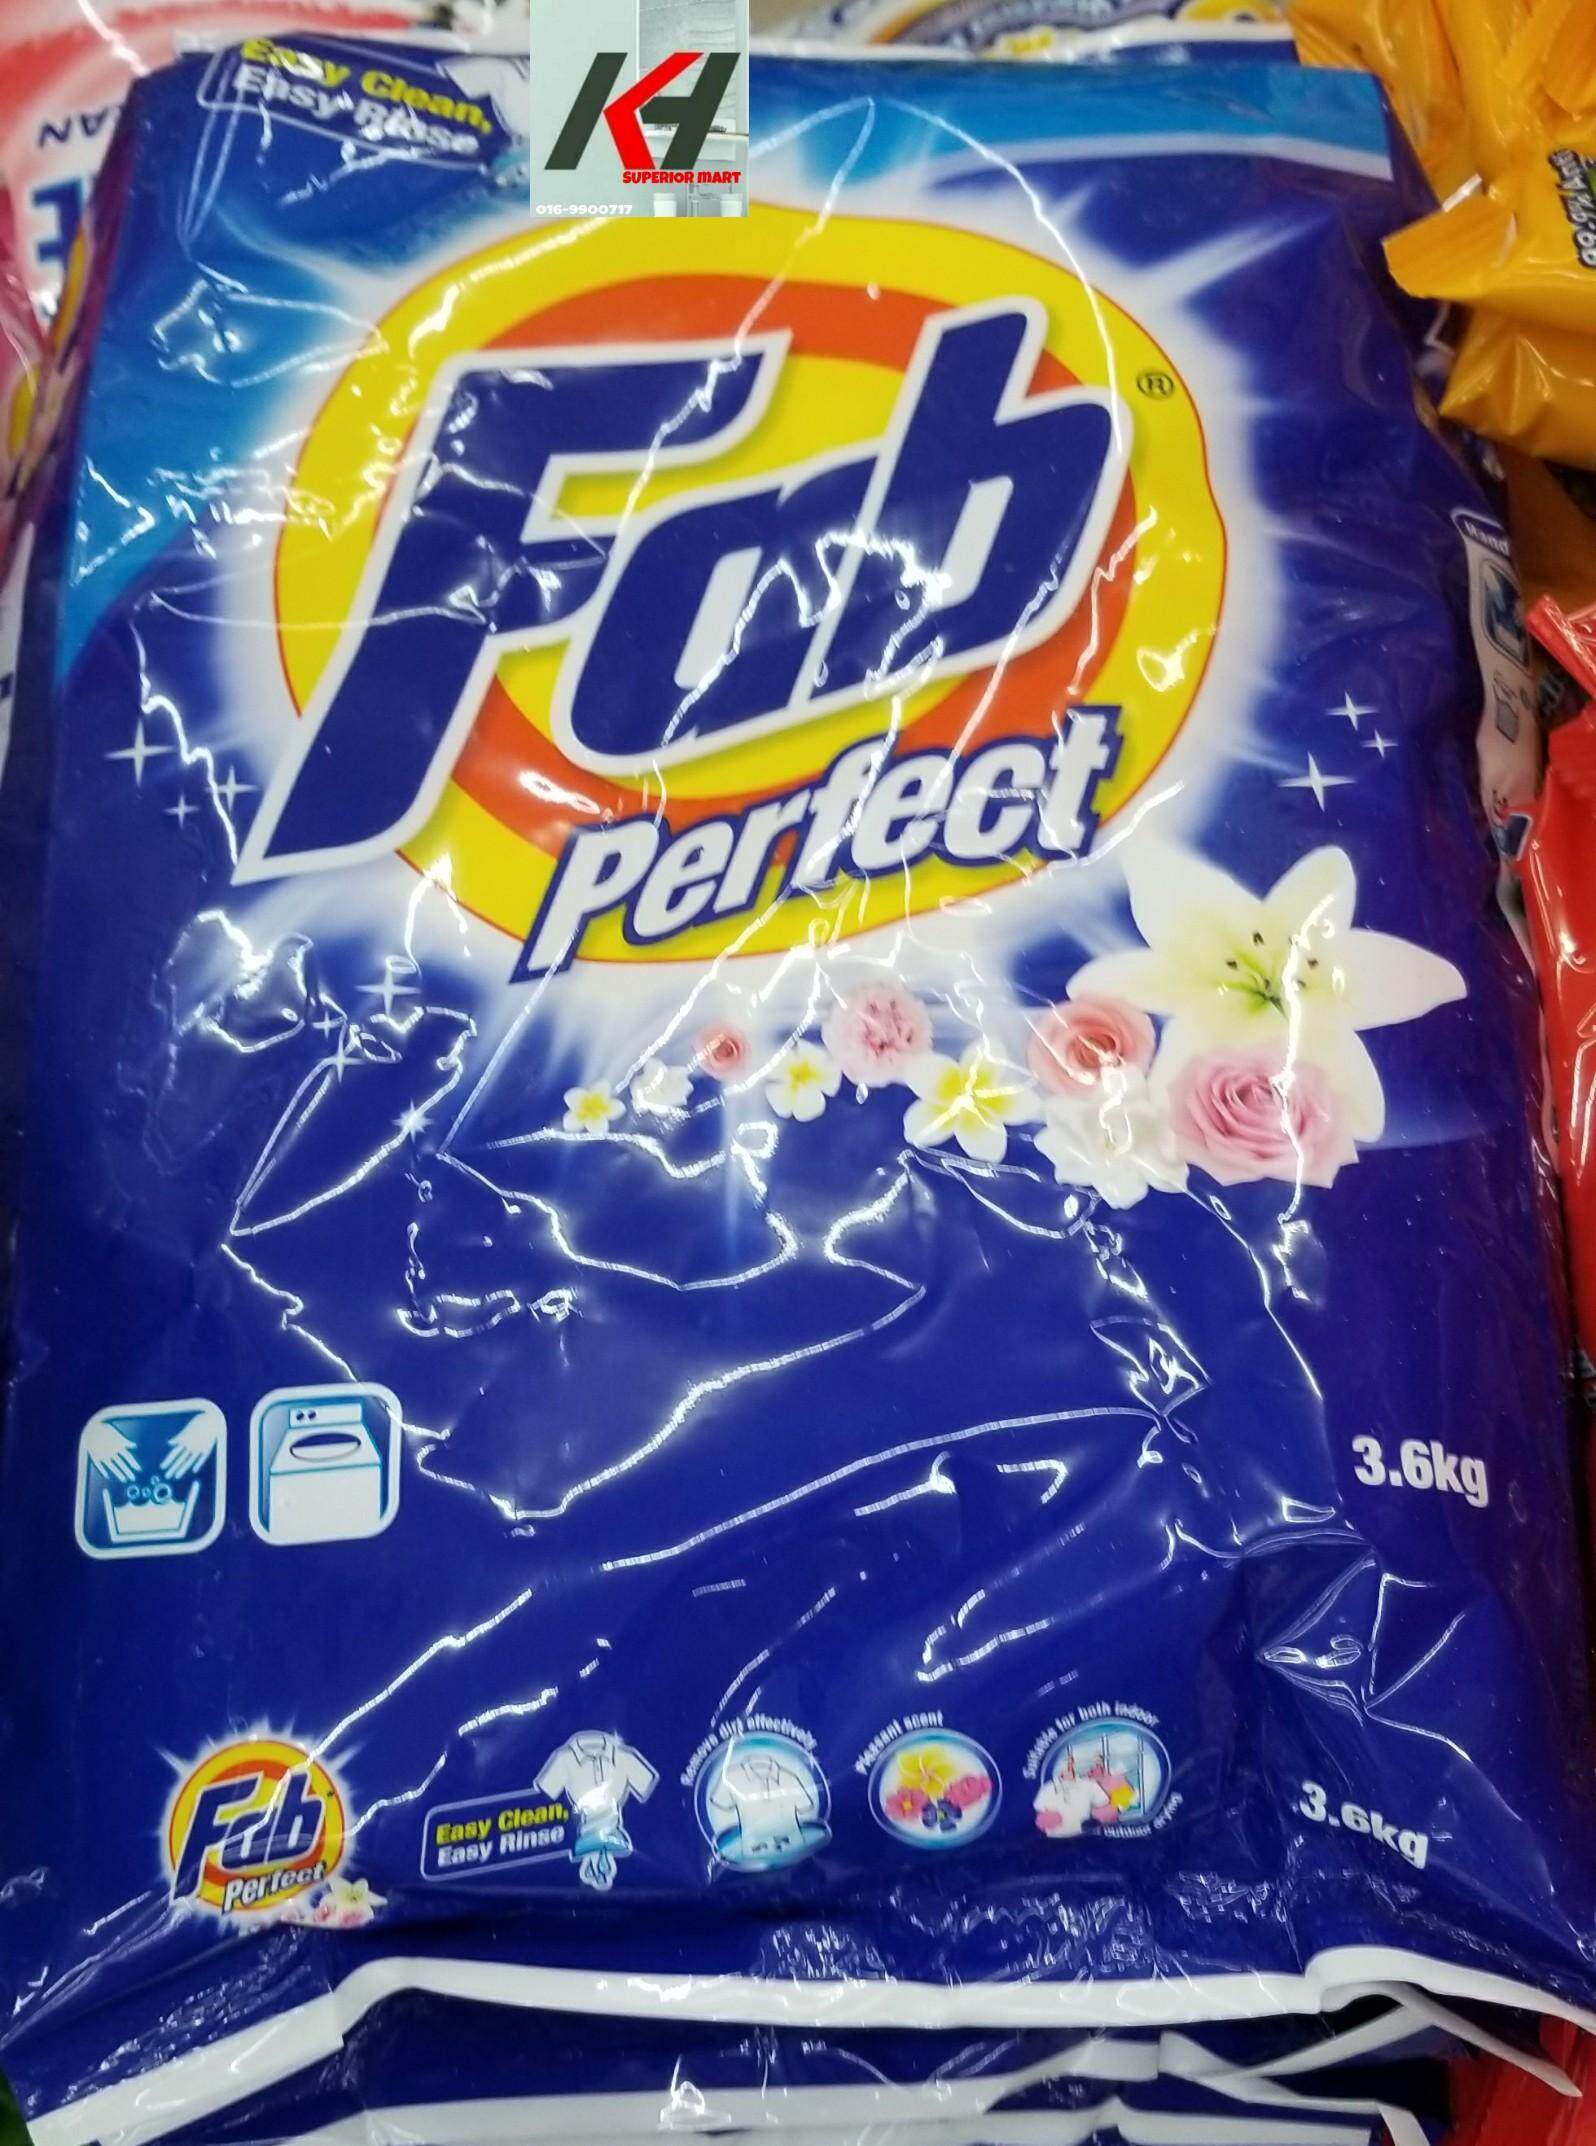 FAB PERFECT POWDER DETERGENT 3.6KG READY STOCK